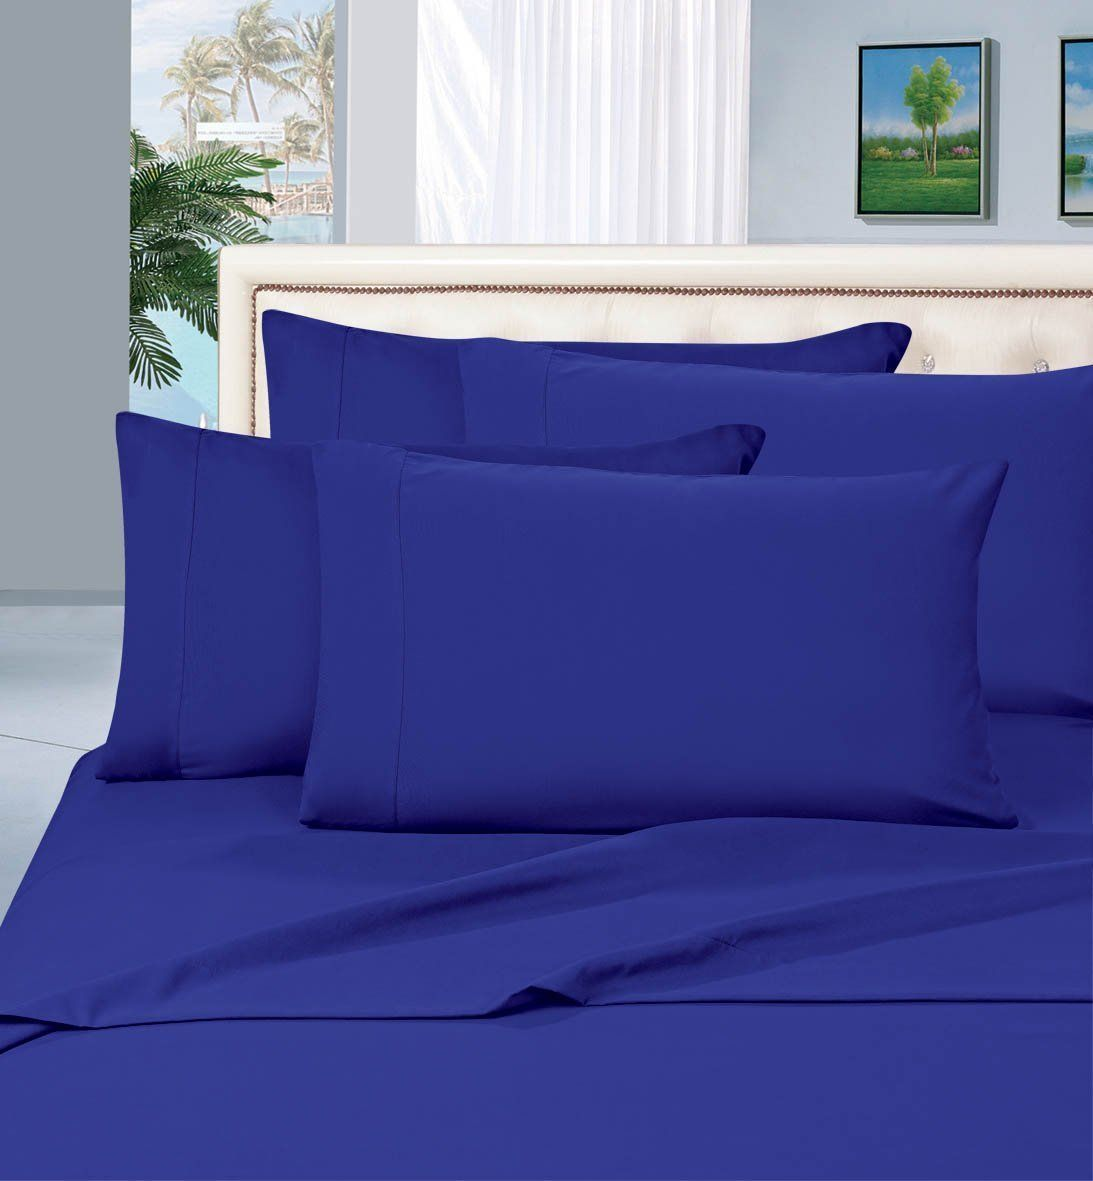 Elegant Comfort 1500 Thread Count Wrinkle Free 4 Pc Sheet Set Deep Pocket All Size And Colors Queen Royal Blue Walmart Com Bed Sheet Sets Bed Sheets Round Bed Sheet [ 1181 x 1093 Pixel ]